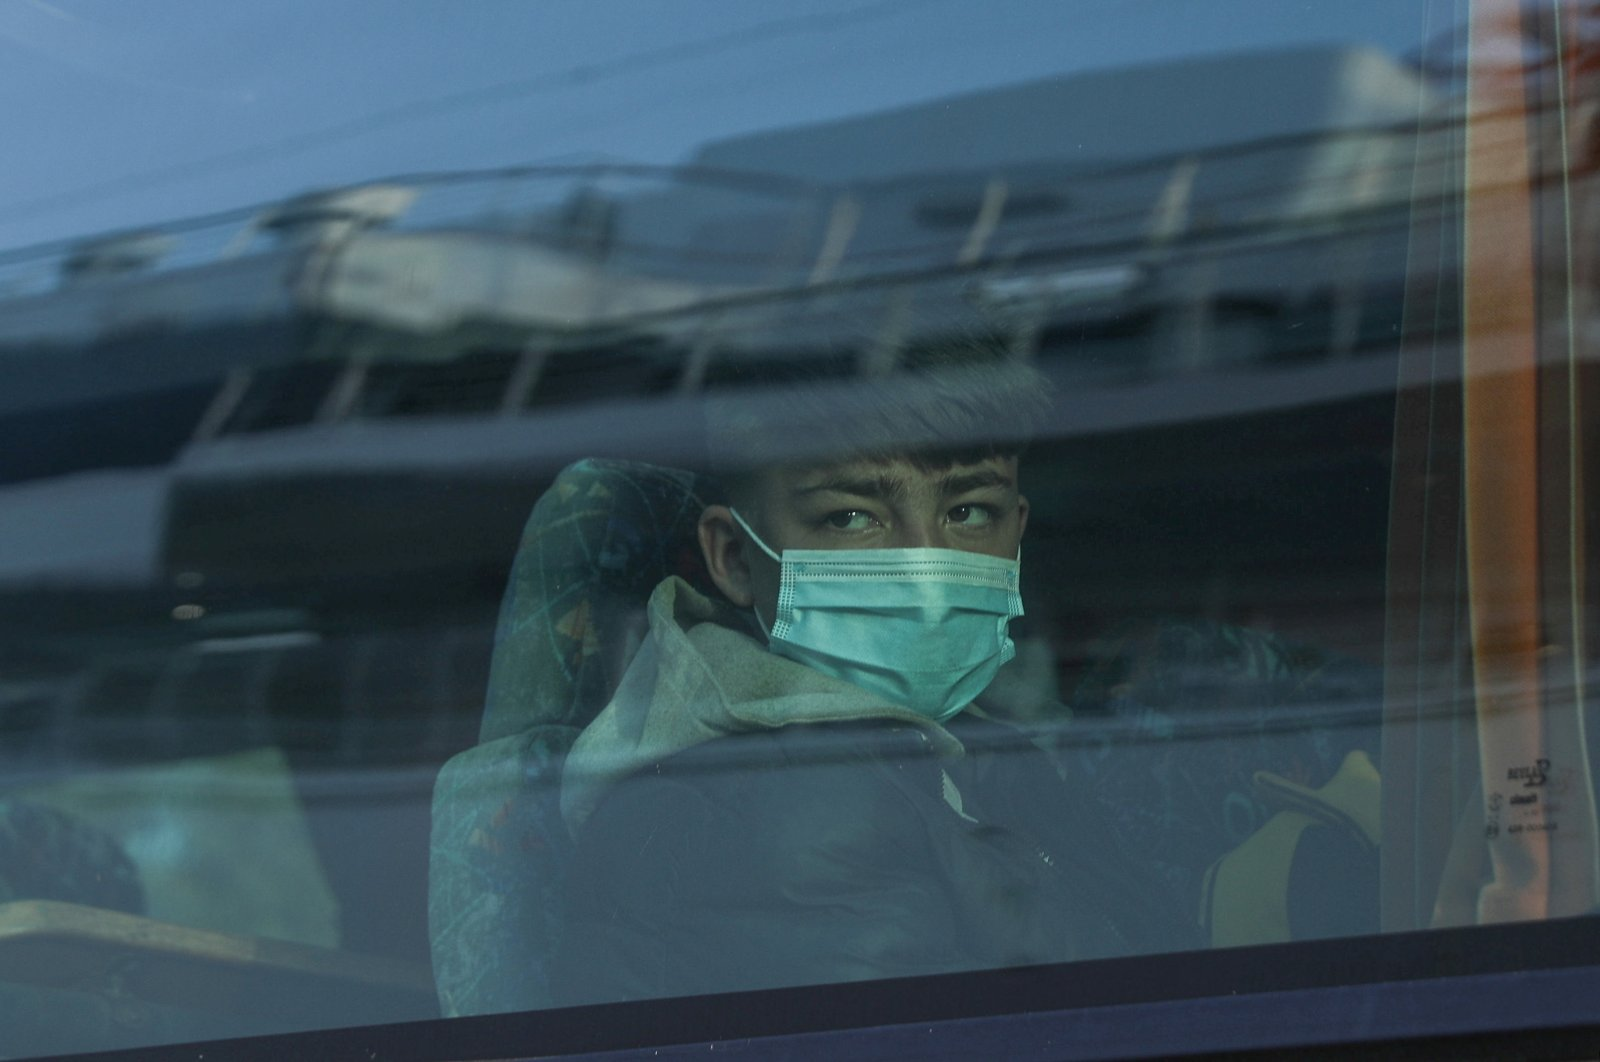 An unaccompanied child from an overcrowded migrant camp who will be transferred to either Germany or Luxembourg wears a protective face mask as a precaution against the spread of coronavirus disease (COVID-19) as he boards a bus at the port of Piraeus, Greece, April 15, 2020. (Reuters Photo)